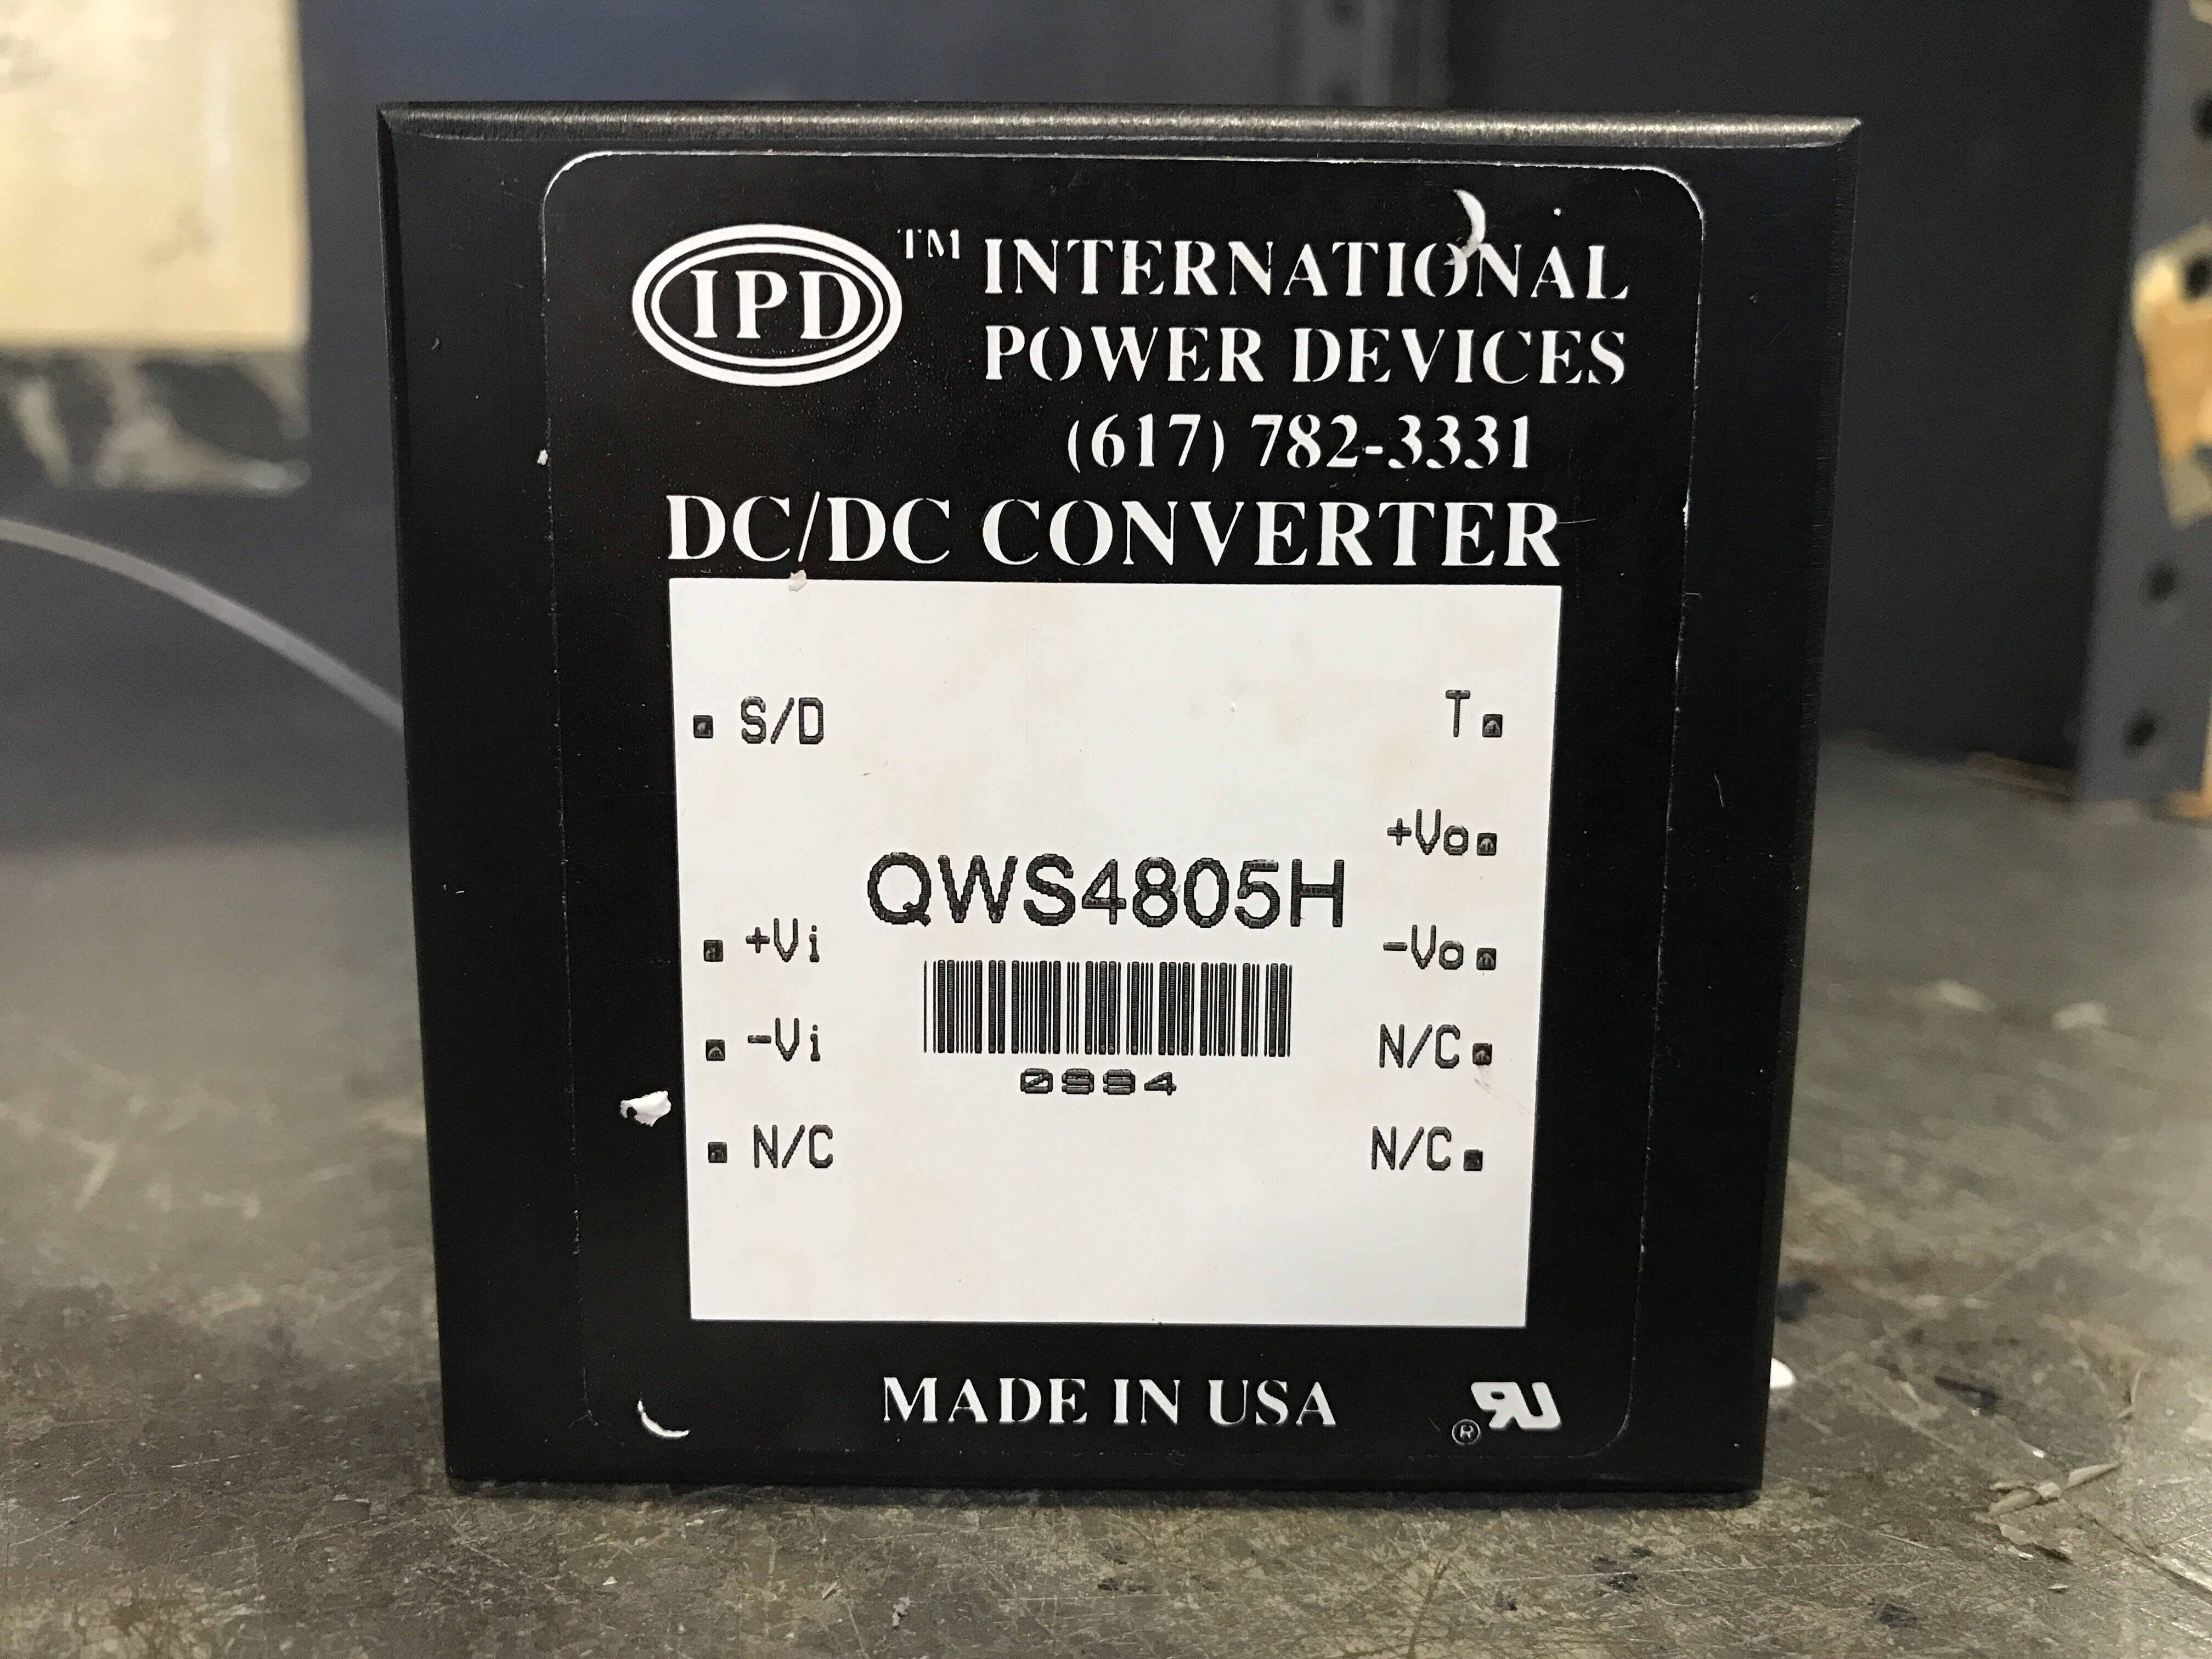 DC/DC Converter IPD QWS4805H